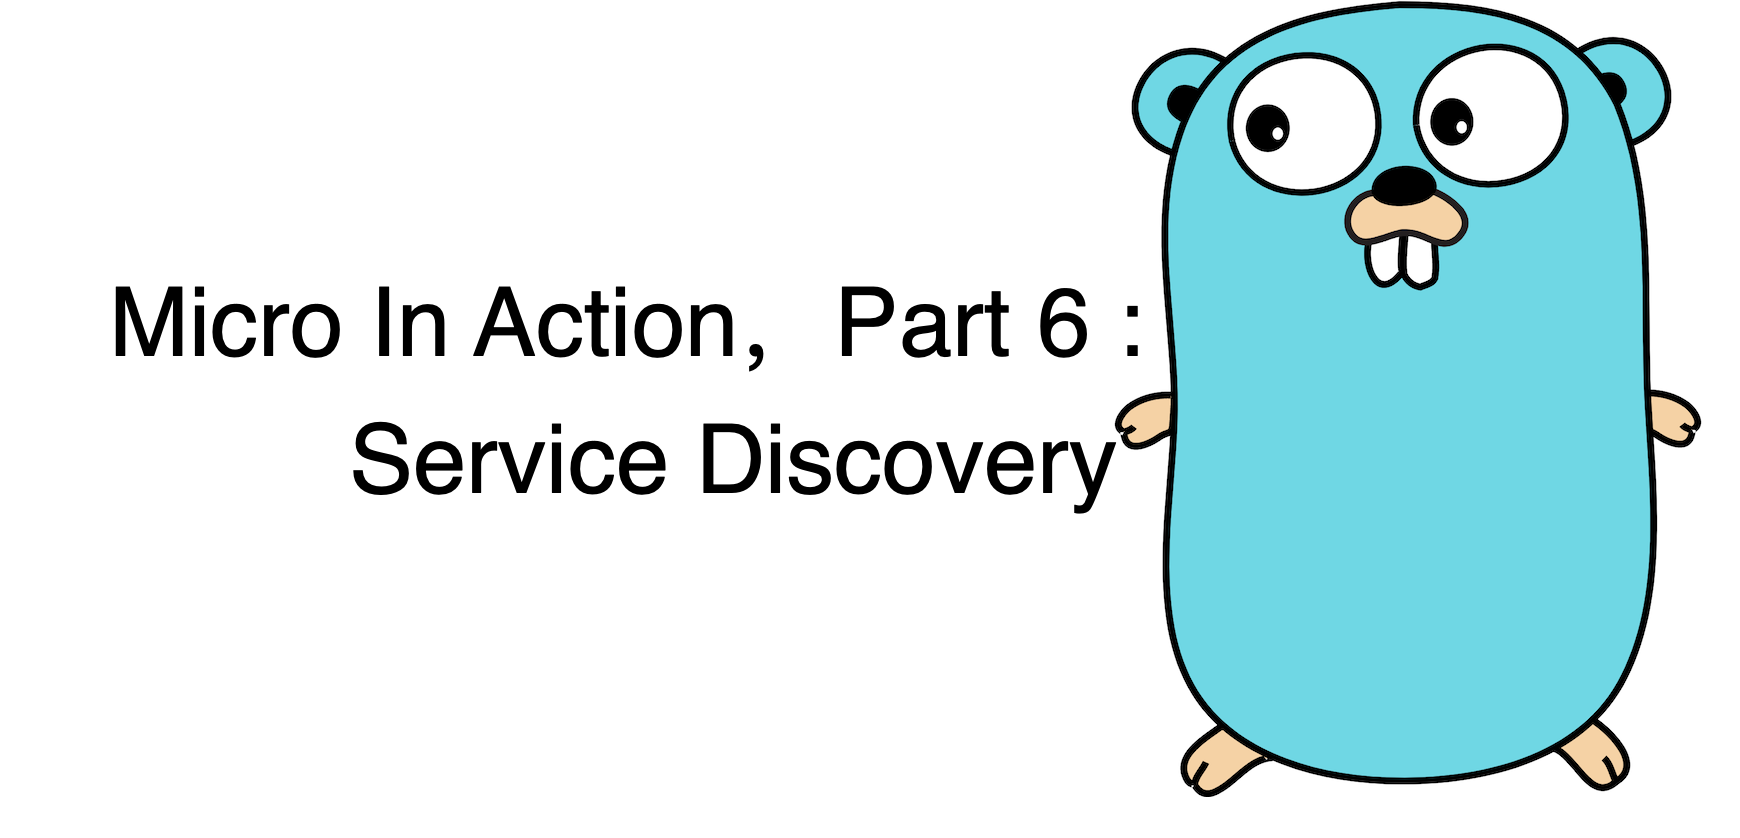 Micro In Action, Part6: Service Discovery